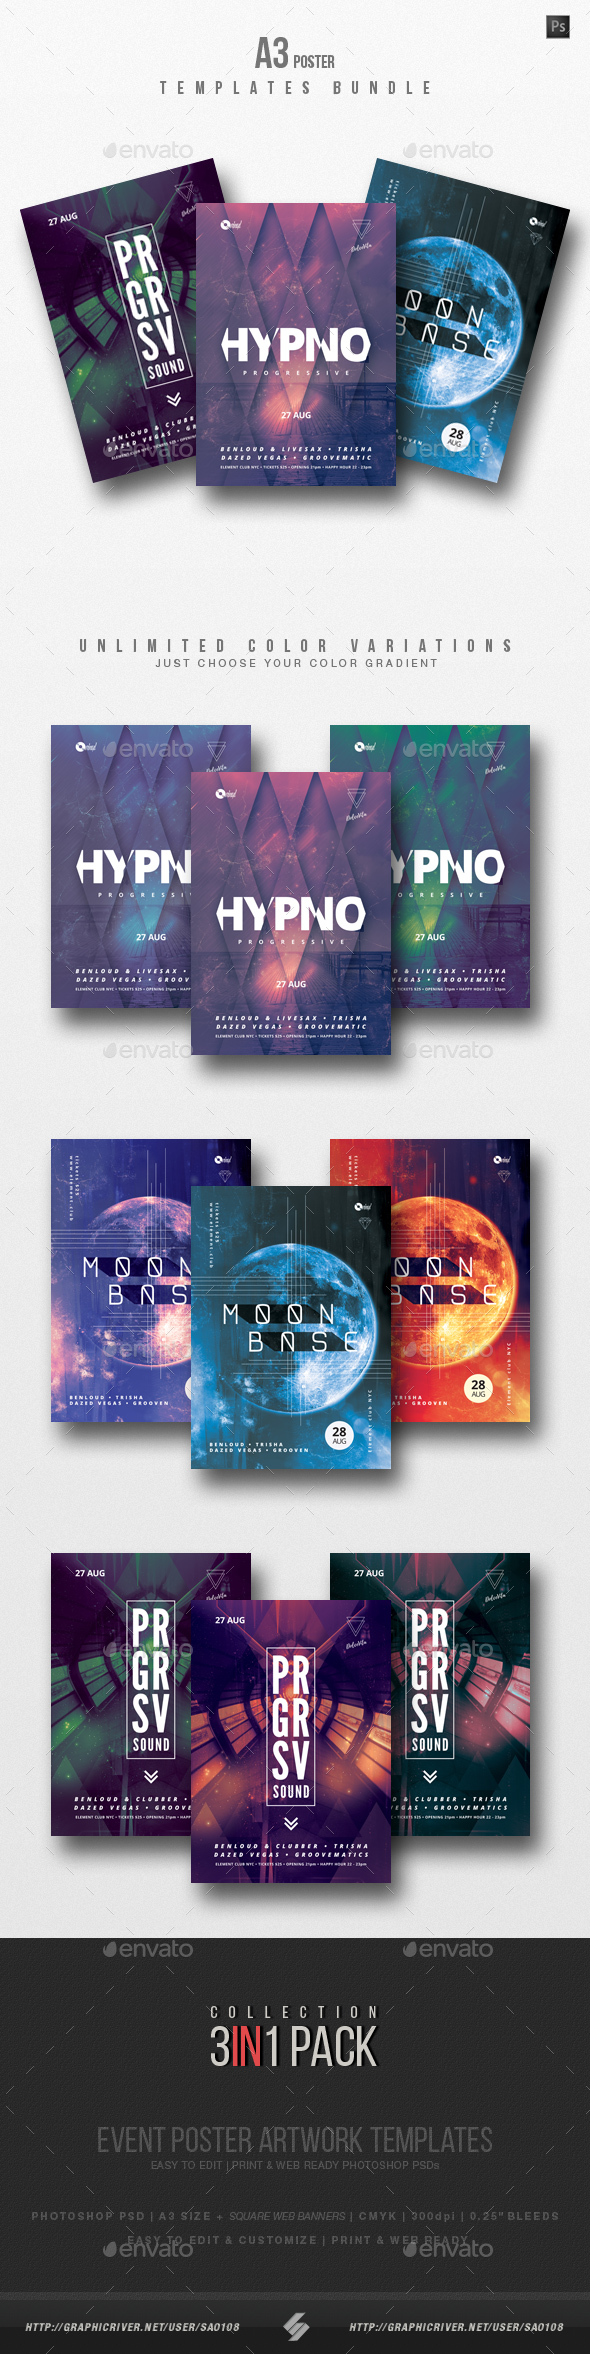 Progressive Sound vol.7 - Party Flyer / Poster Templates Bundle - Clubs & Parties Events